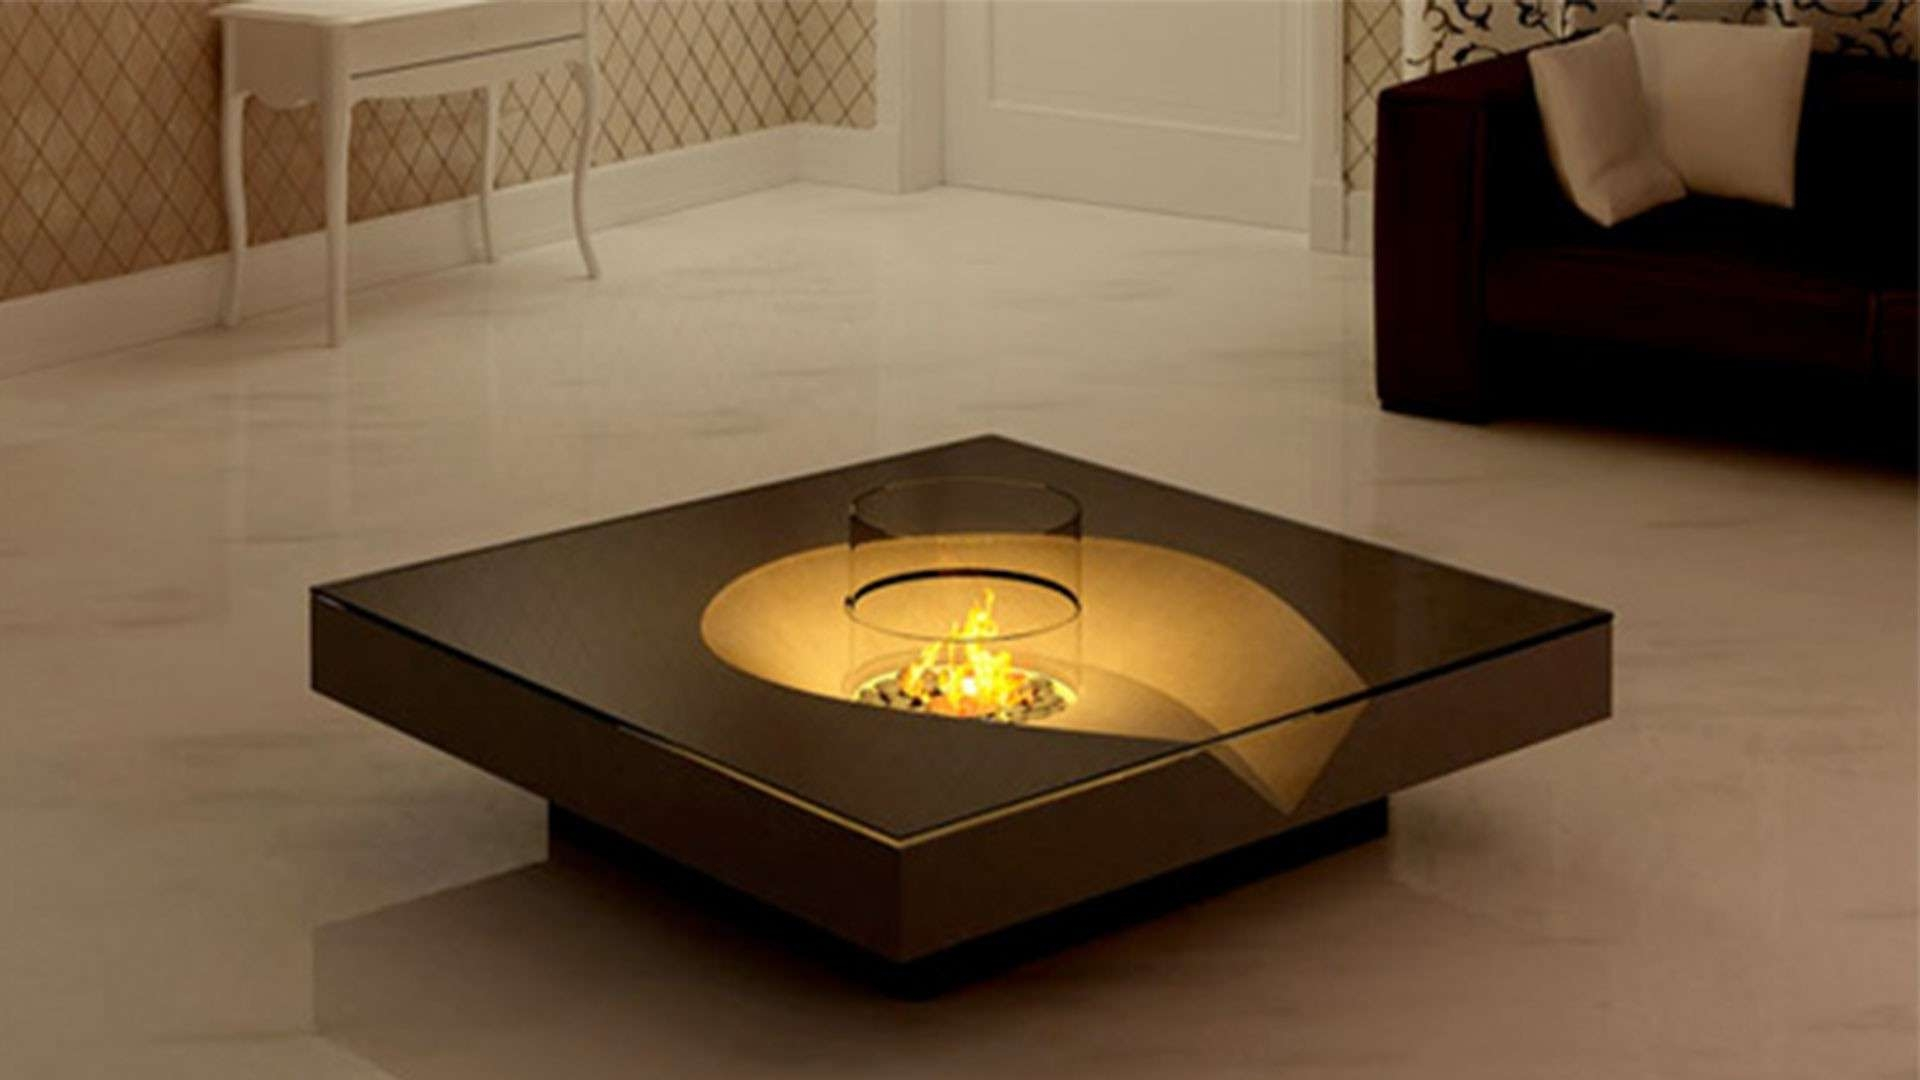 Preferred Glass Coffee Tables With Storage Within Coffee Table : Inch Round Coffee Table Oversized Coffee Table With (View 17 of 20)